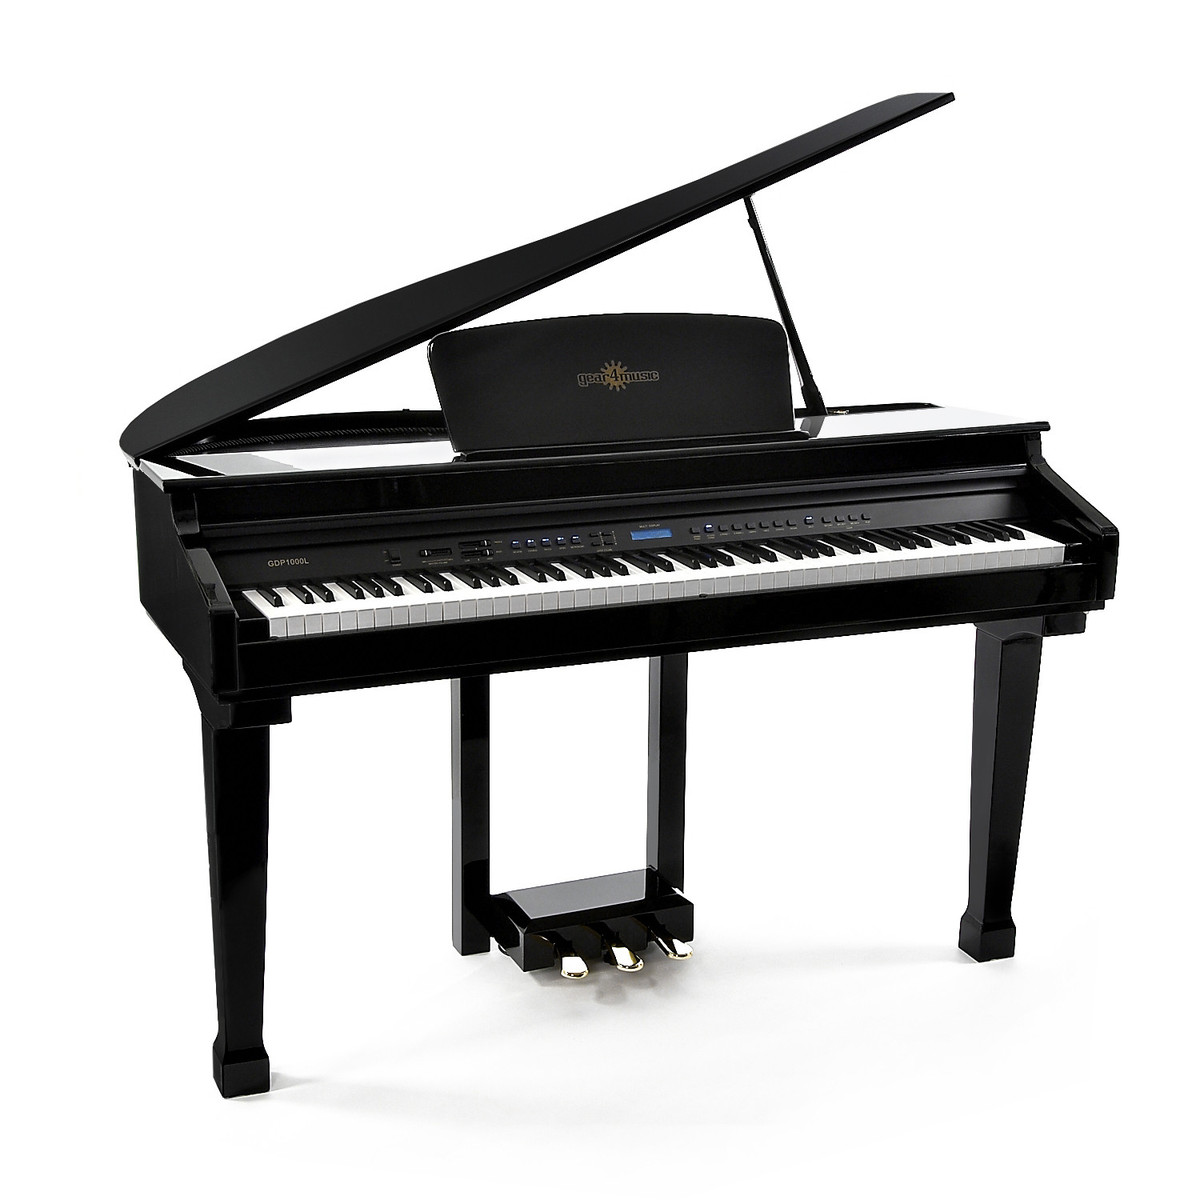 gdp 100 digital grand piano by gear4music b stock at. Black Bedroom Furniture Sets. Home Design Ideas